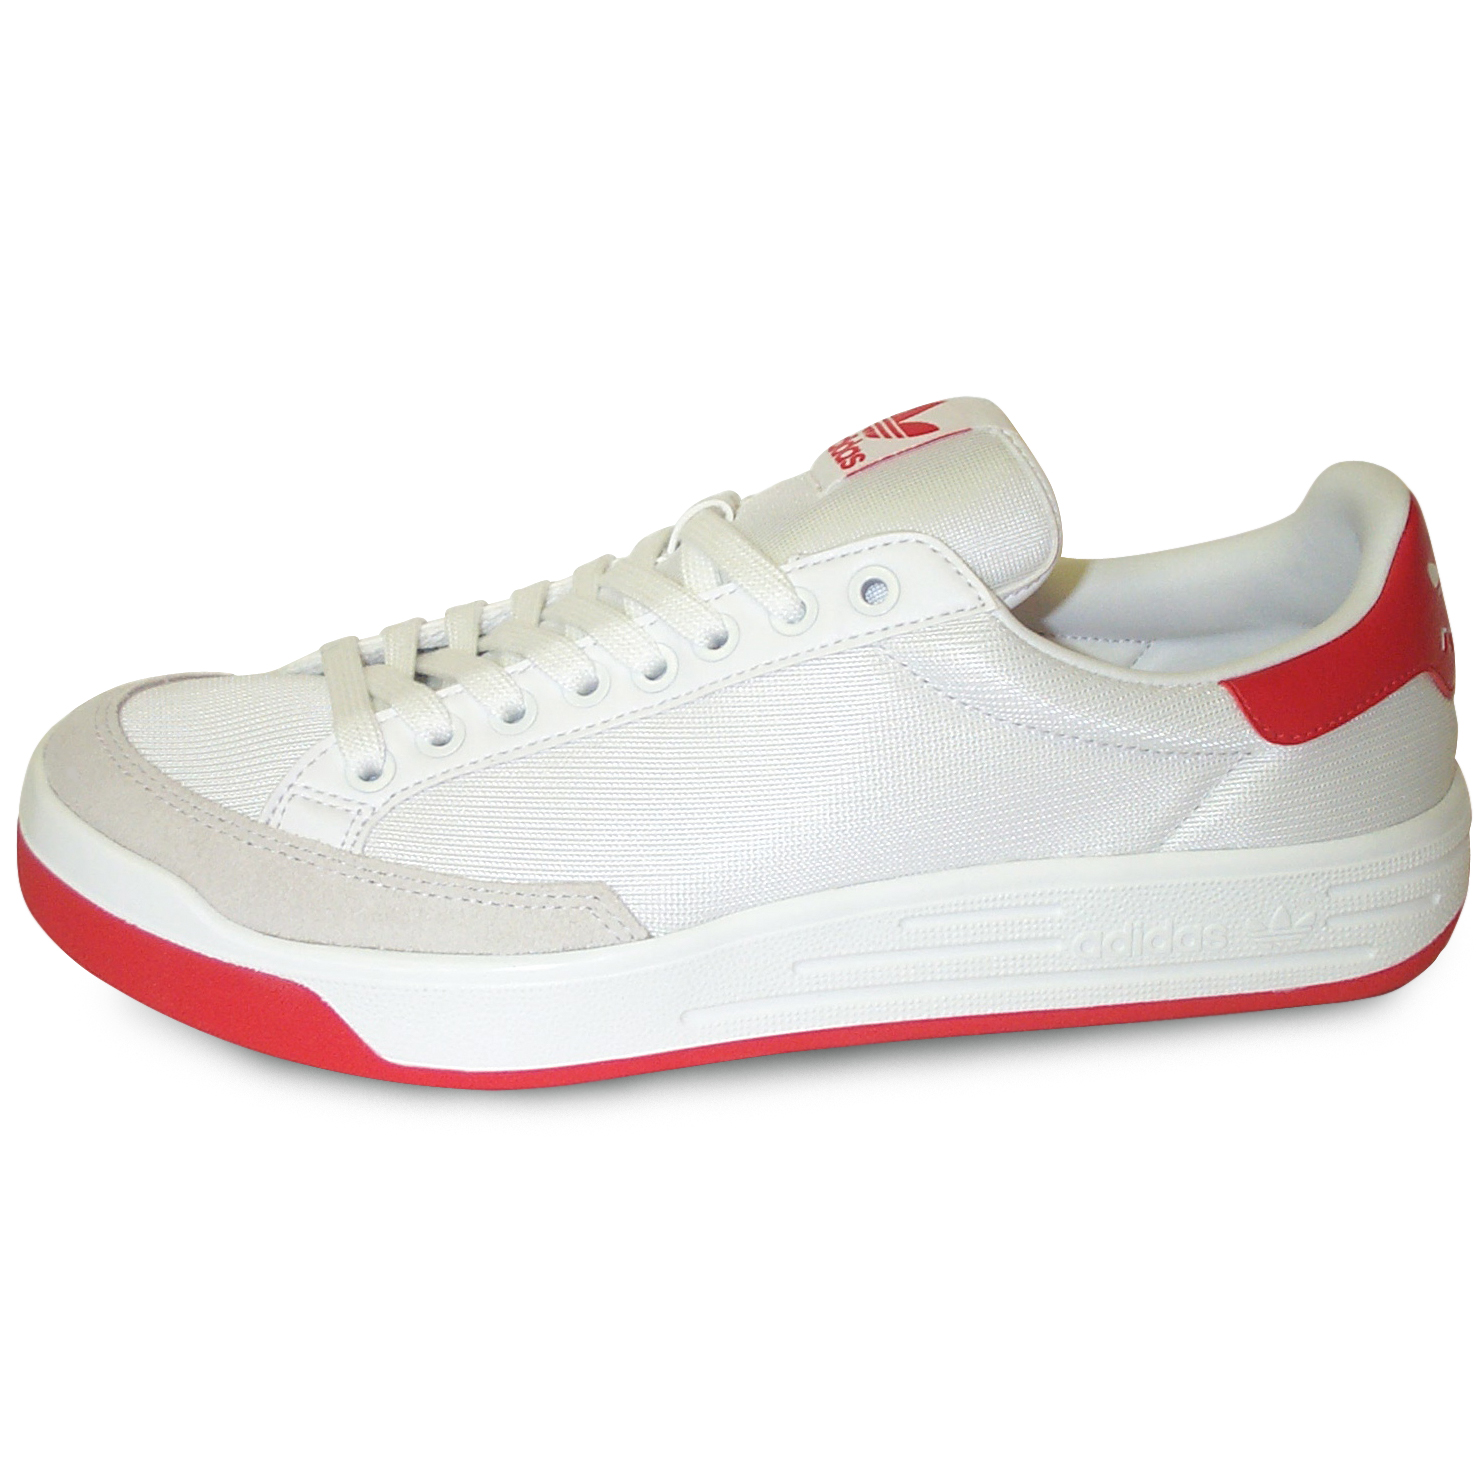 Adidas Rod Laver Super Tennis Shoe White/Red